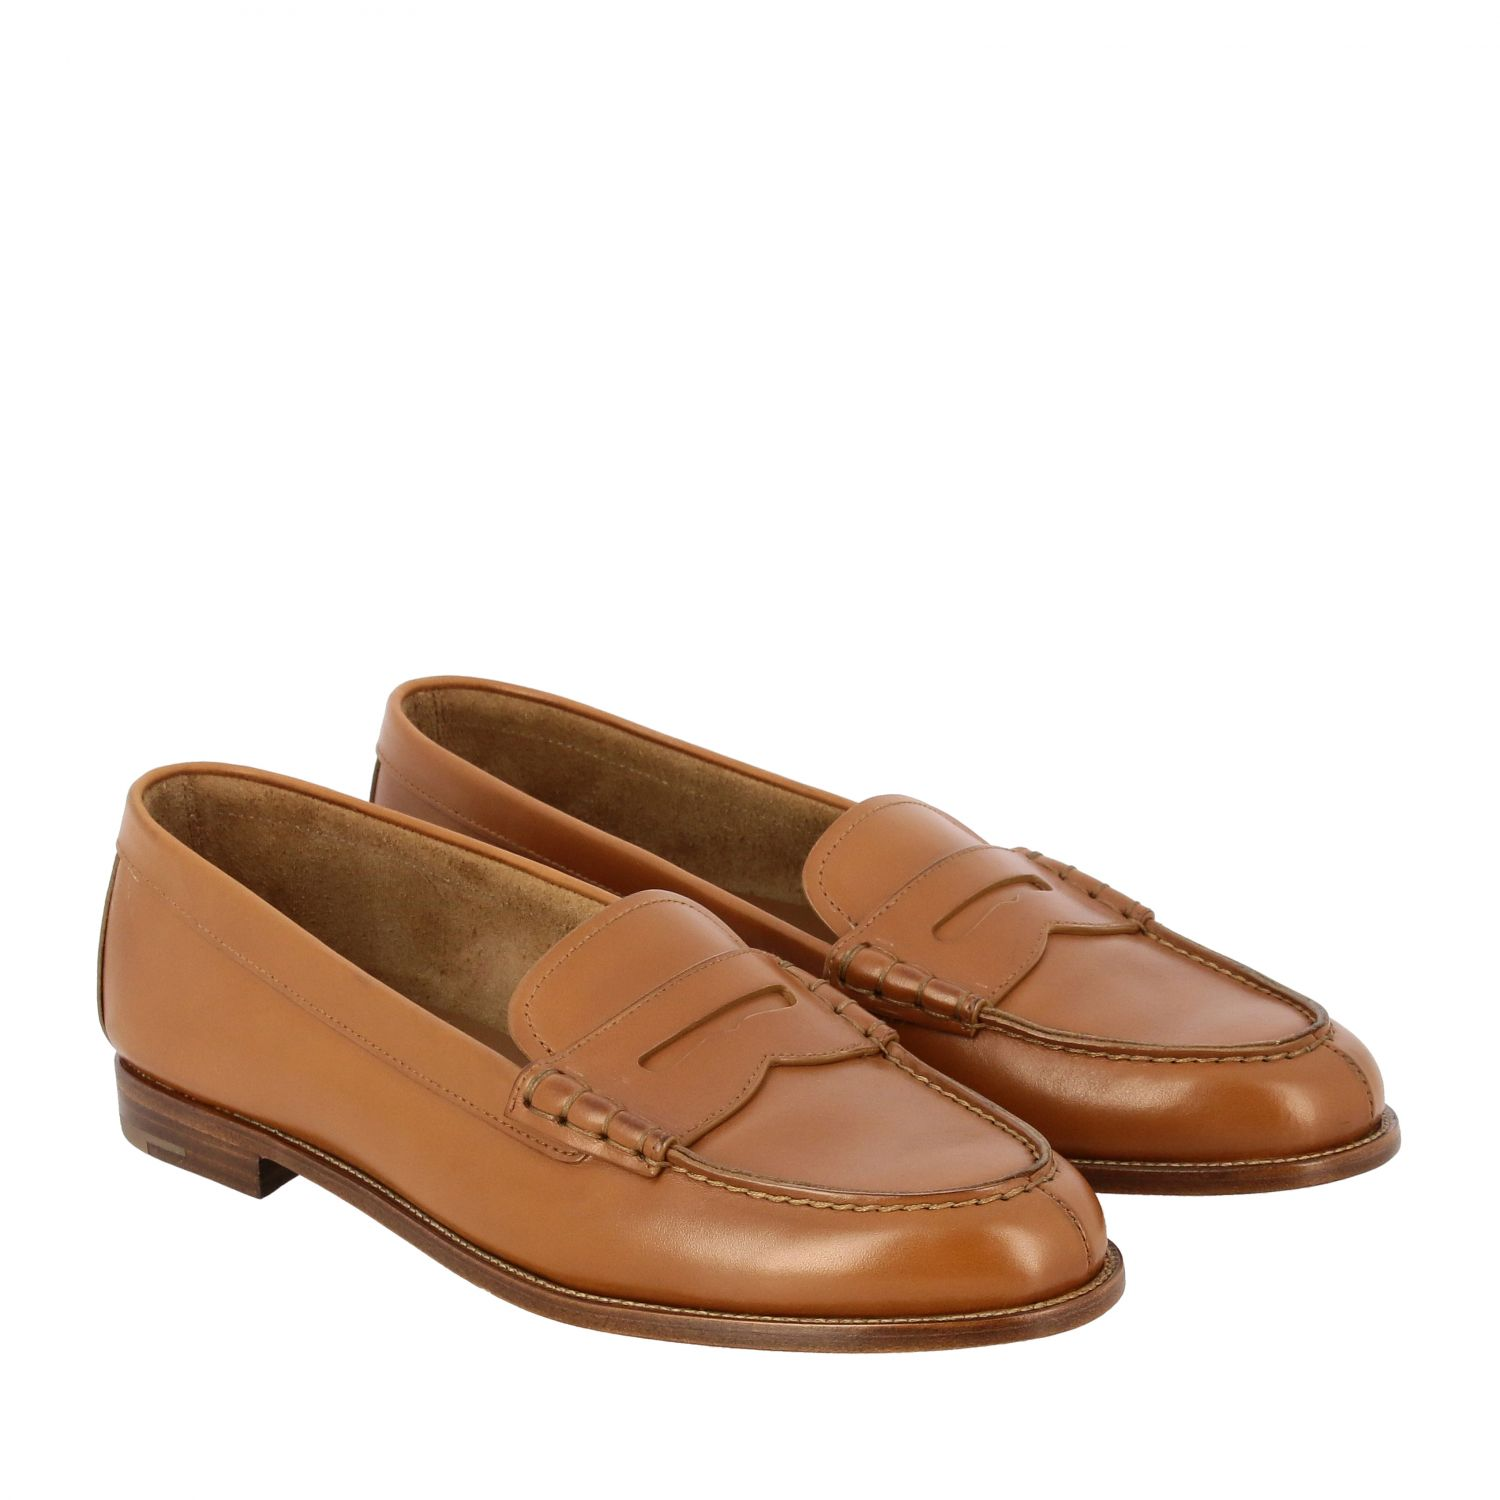 Loafers Church's: Shoes women Church's leather 2